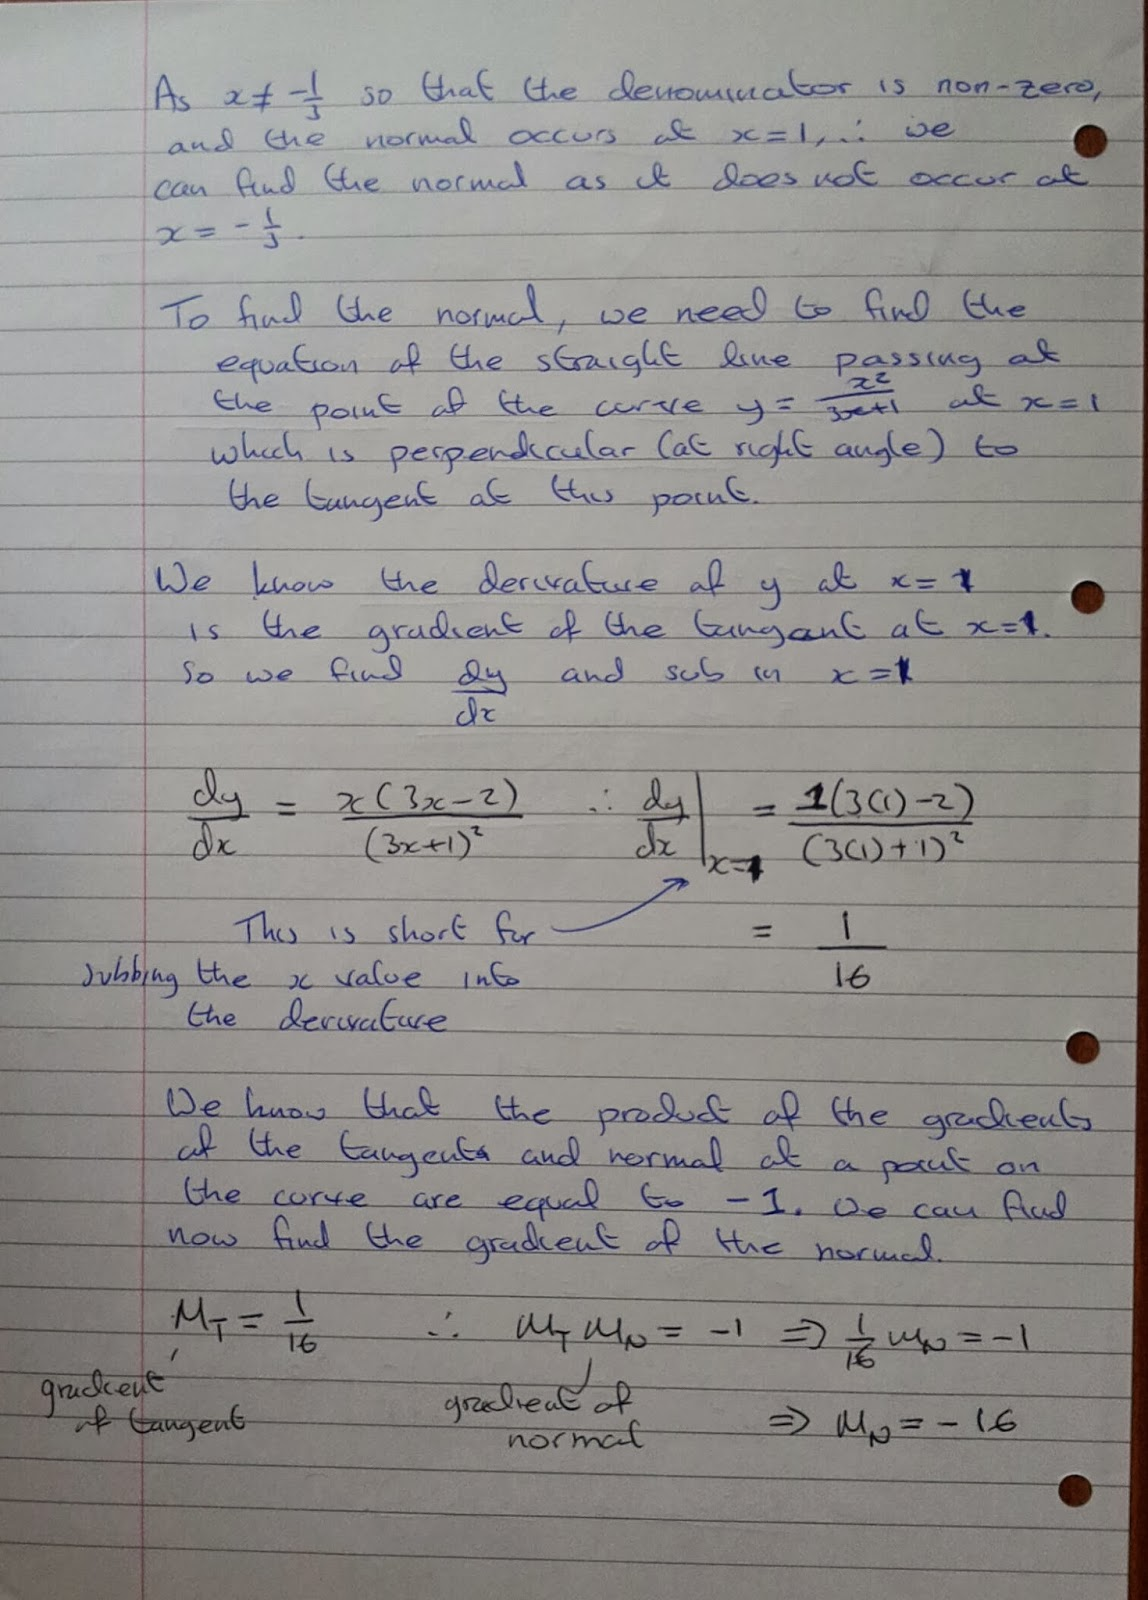 differentiation summary 37 44 effects of differentiation in early secondary education (12-14 years)   38 441 overview of differentiation in early secondary education.